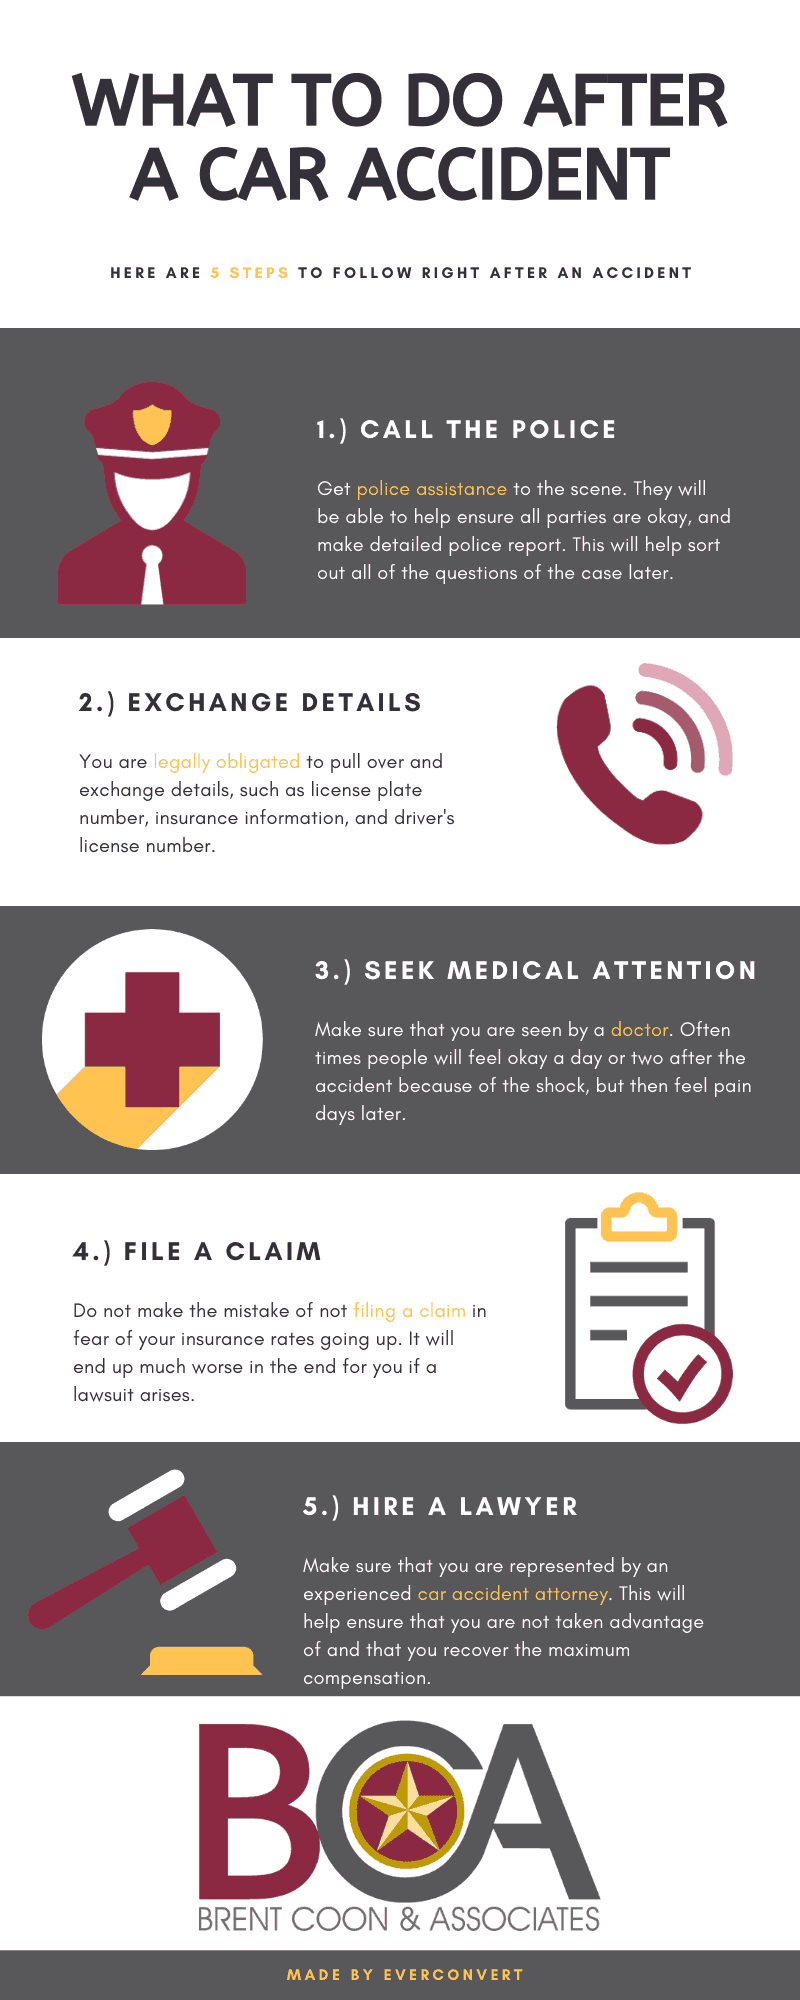 What To Do After A Car Accident In Texas Infographic